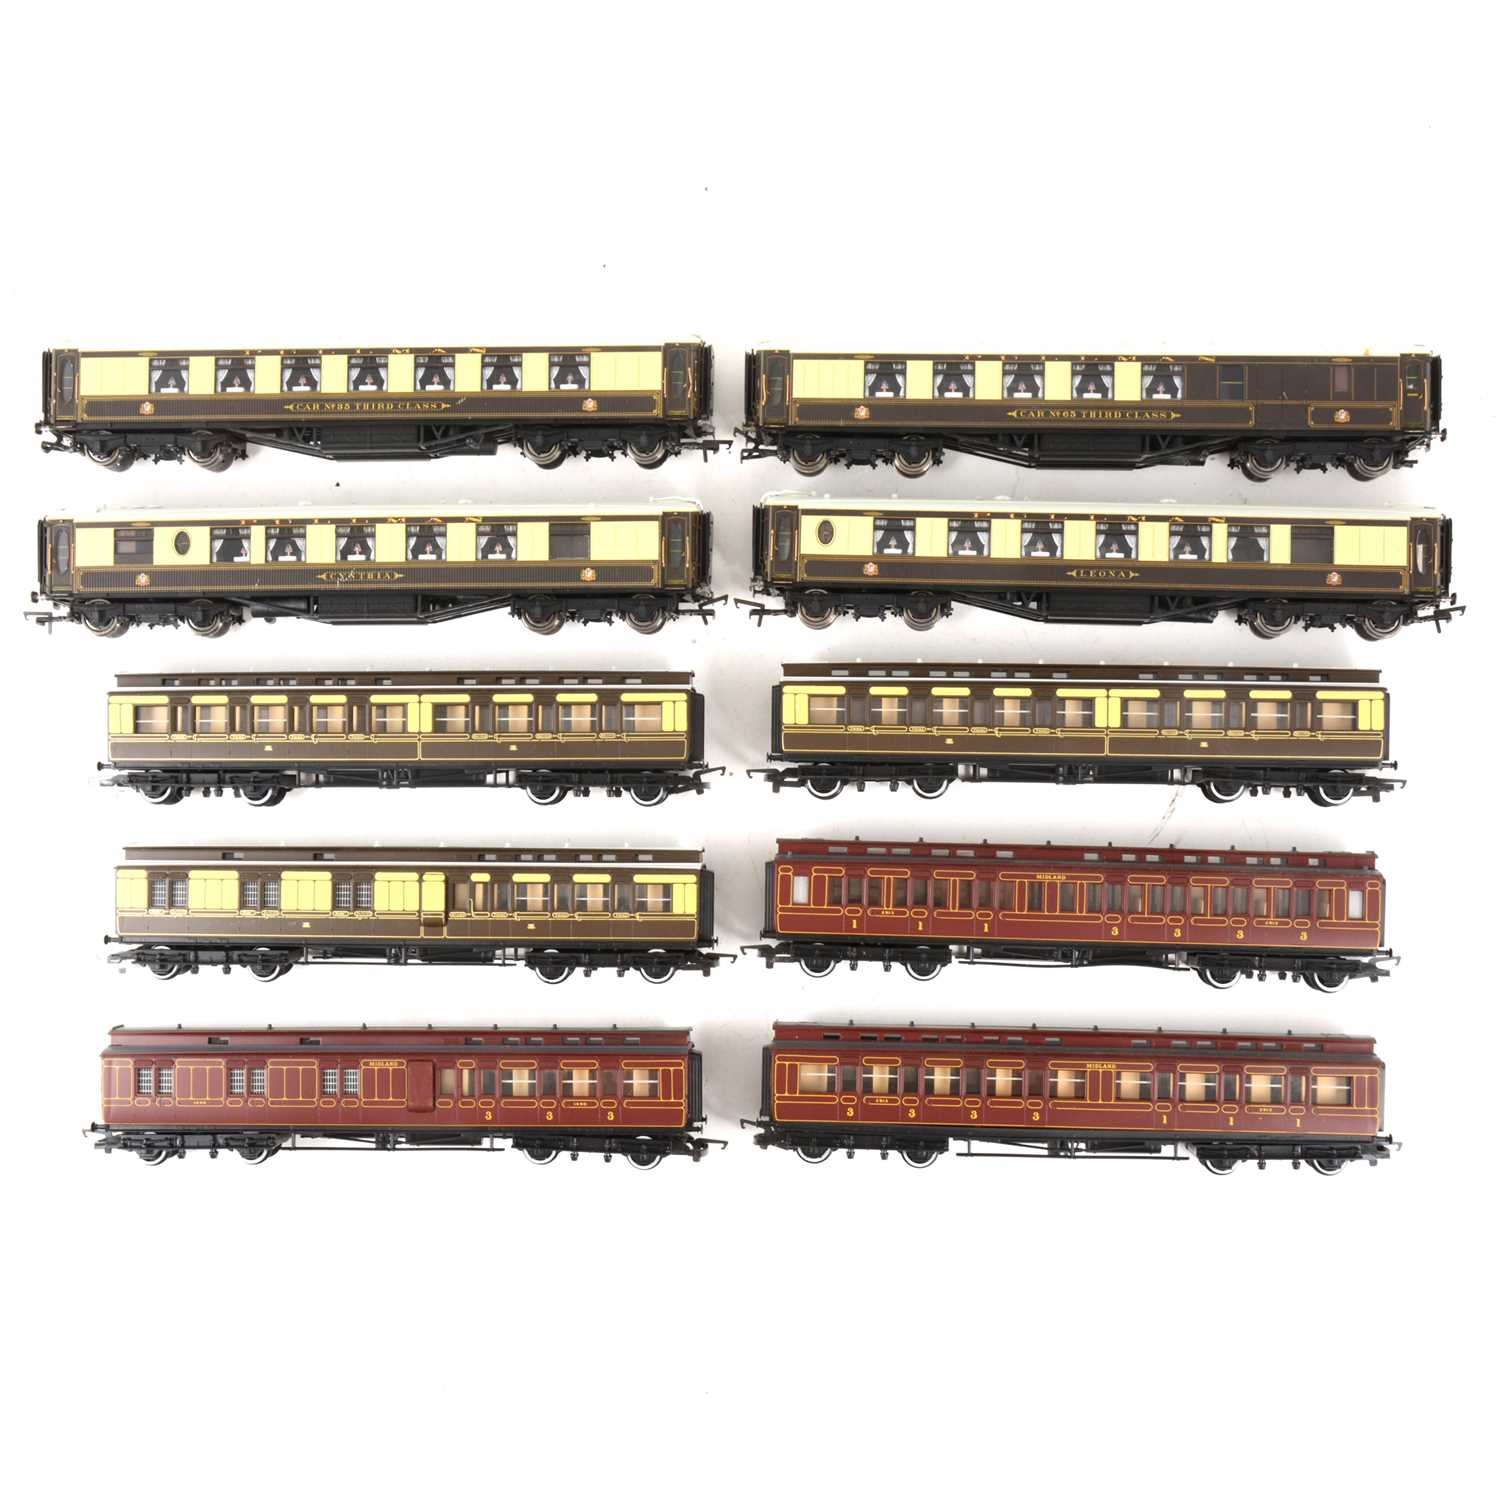 Lot 528 - Ten Hornby OO gauge model railway passenger coaches